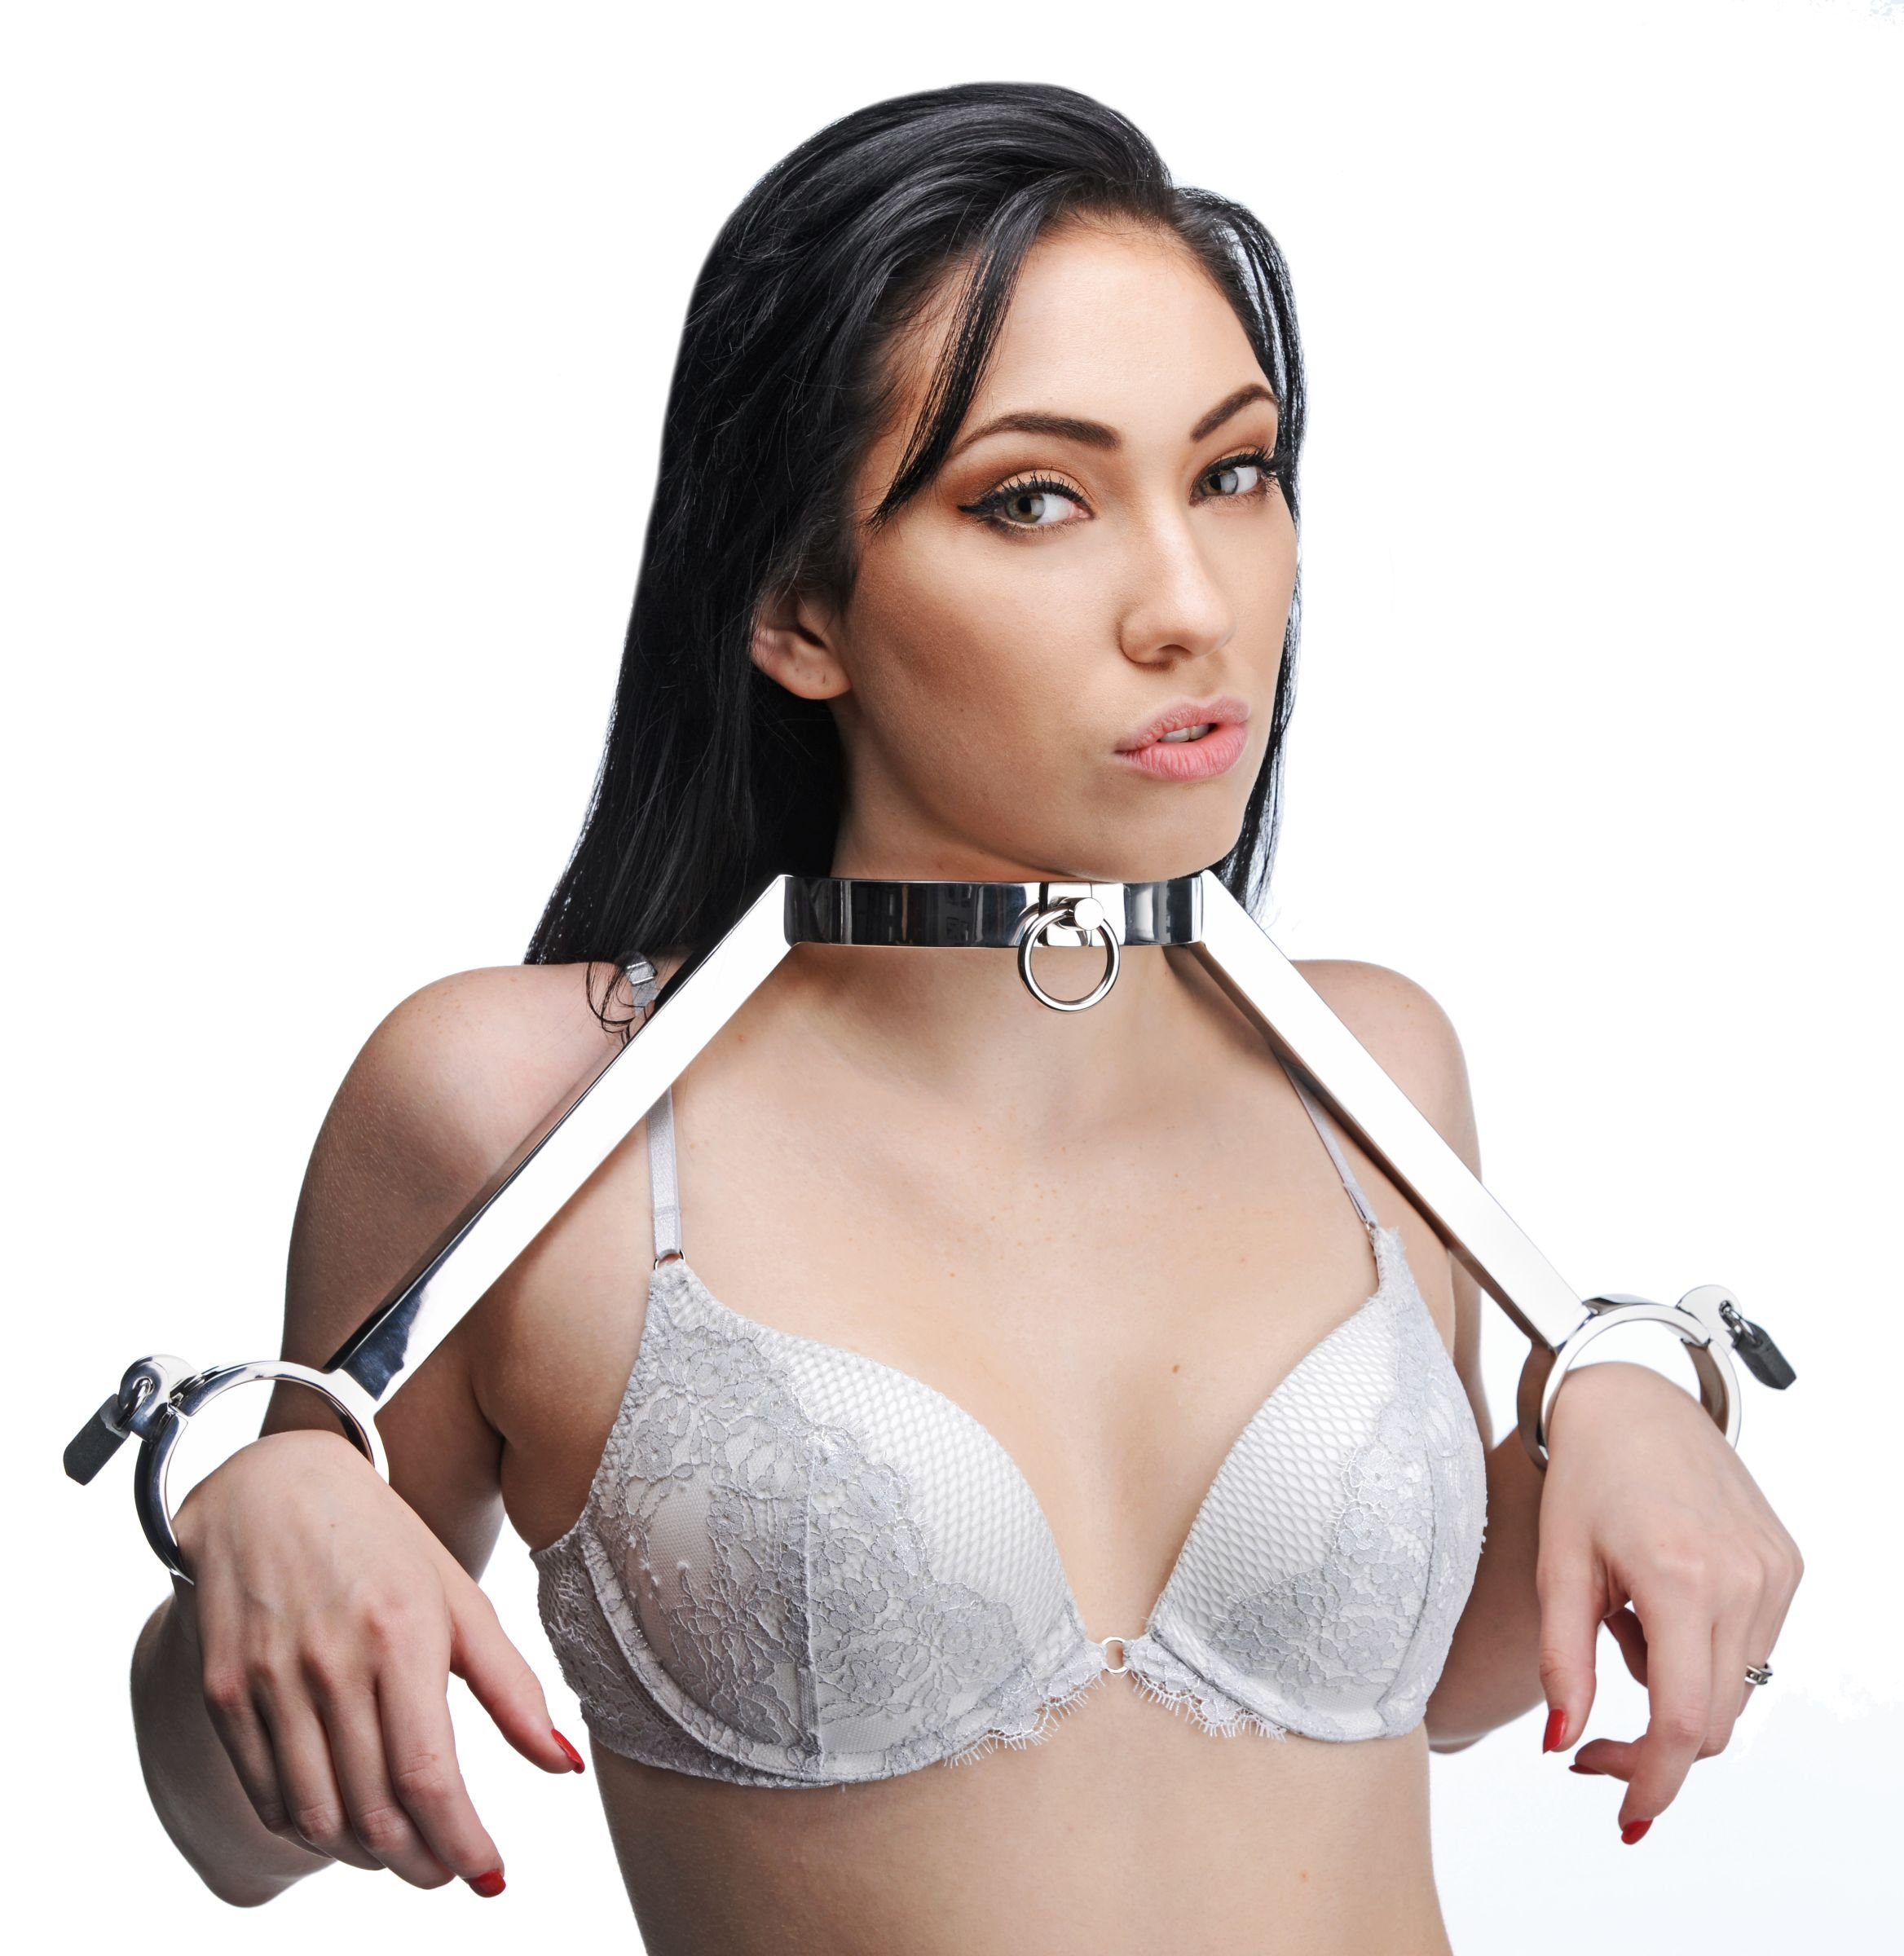 Master Series At Your Mercy Stainless Steel Neck to Wrist Restraints by Master Series